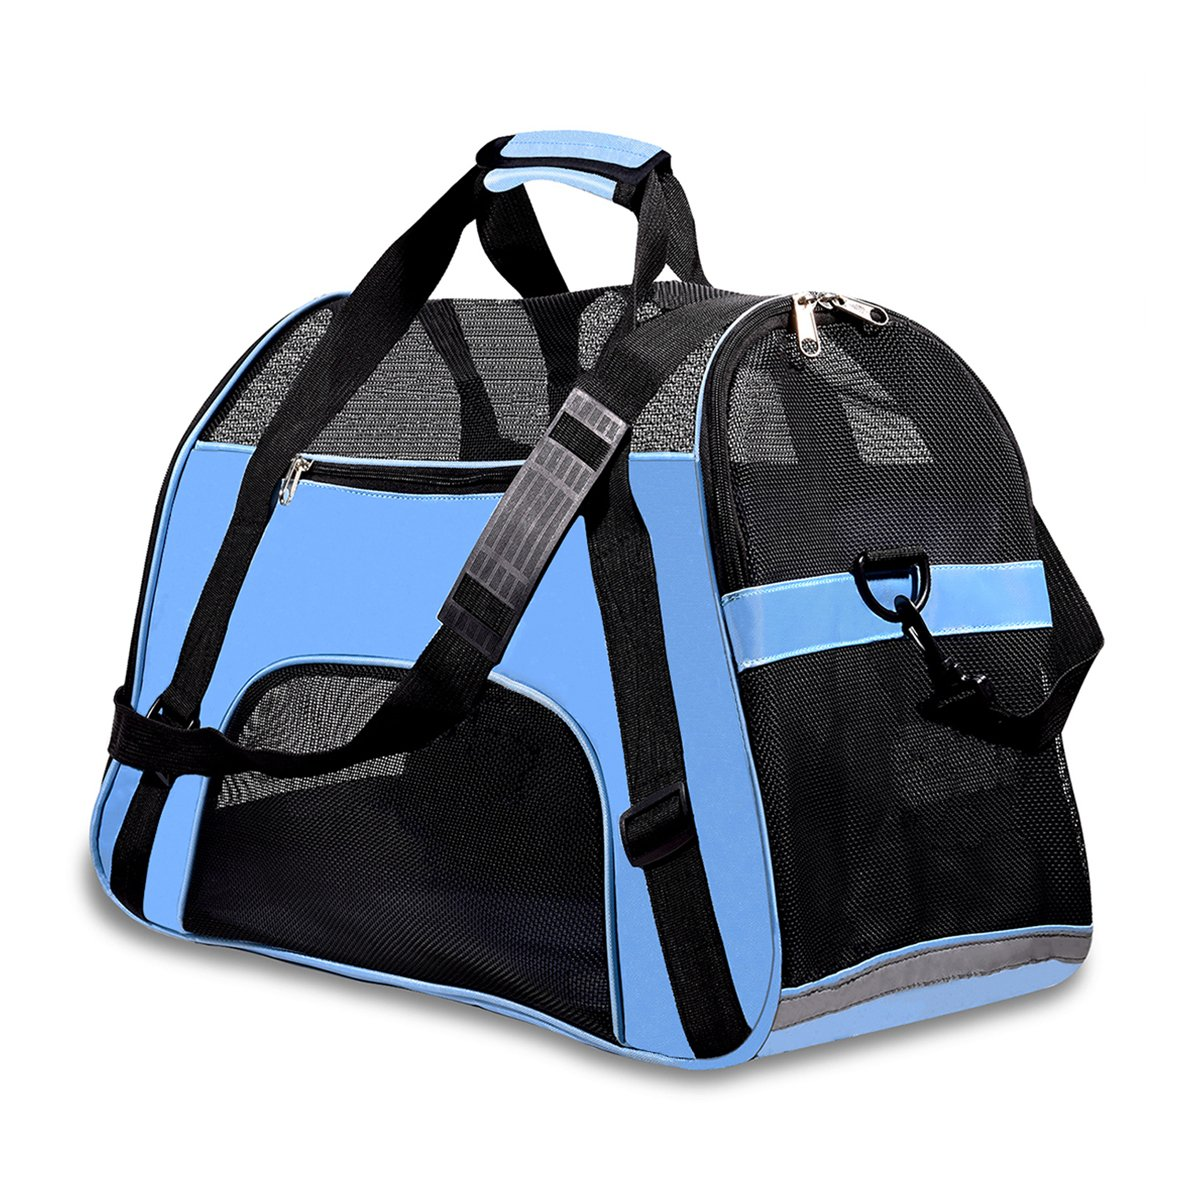 PPOGOO Pet Travel Carriers Soft Sided Portable Bags for Dogs and Cats Airline Approved Dog Carrier 22'' L x 10.2'' W x 13.8'' H Sky Blue by PPOGOO (Image #1)